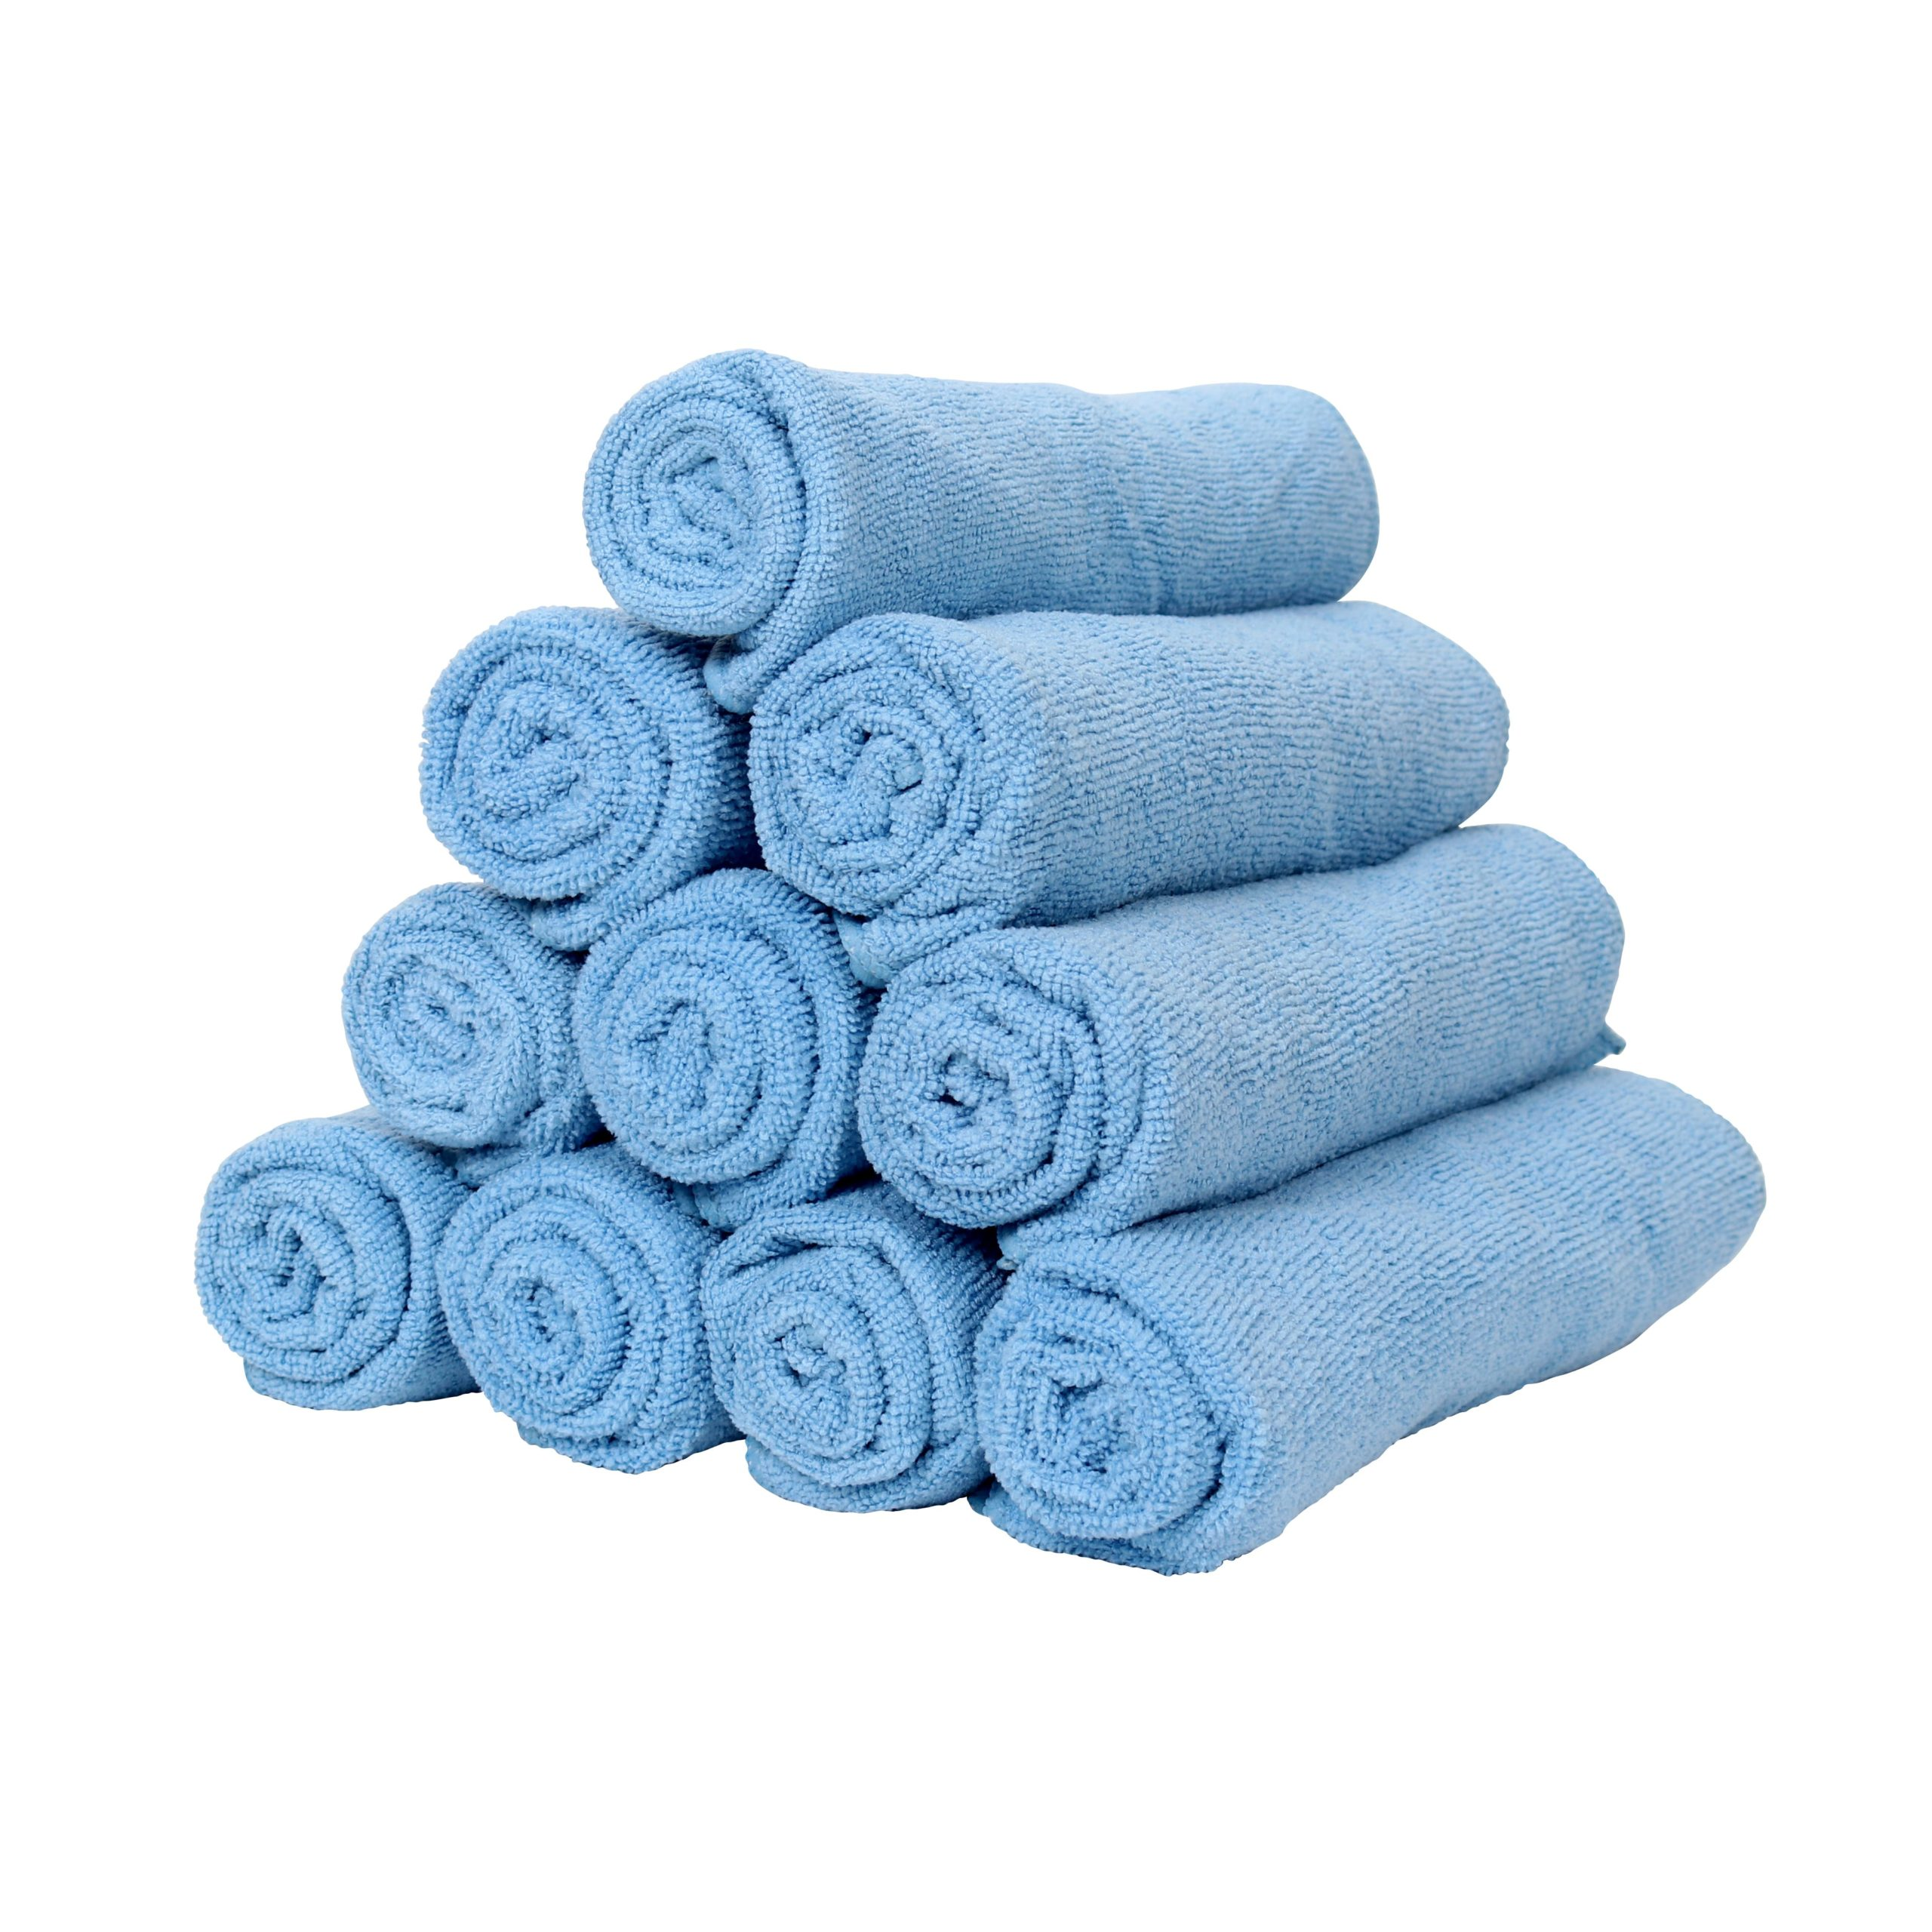 Microfiber 16 x 27 in. Towel (Gym Towel)